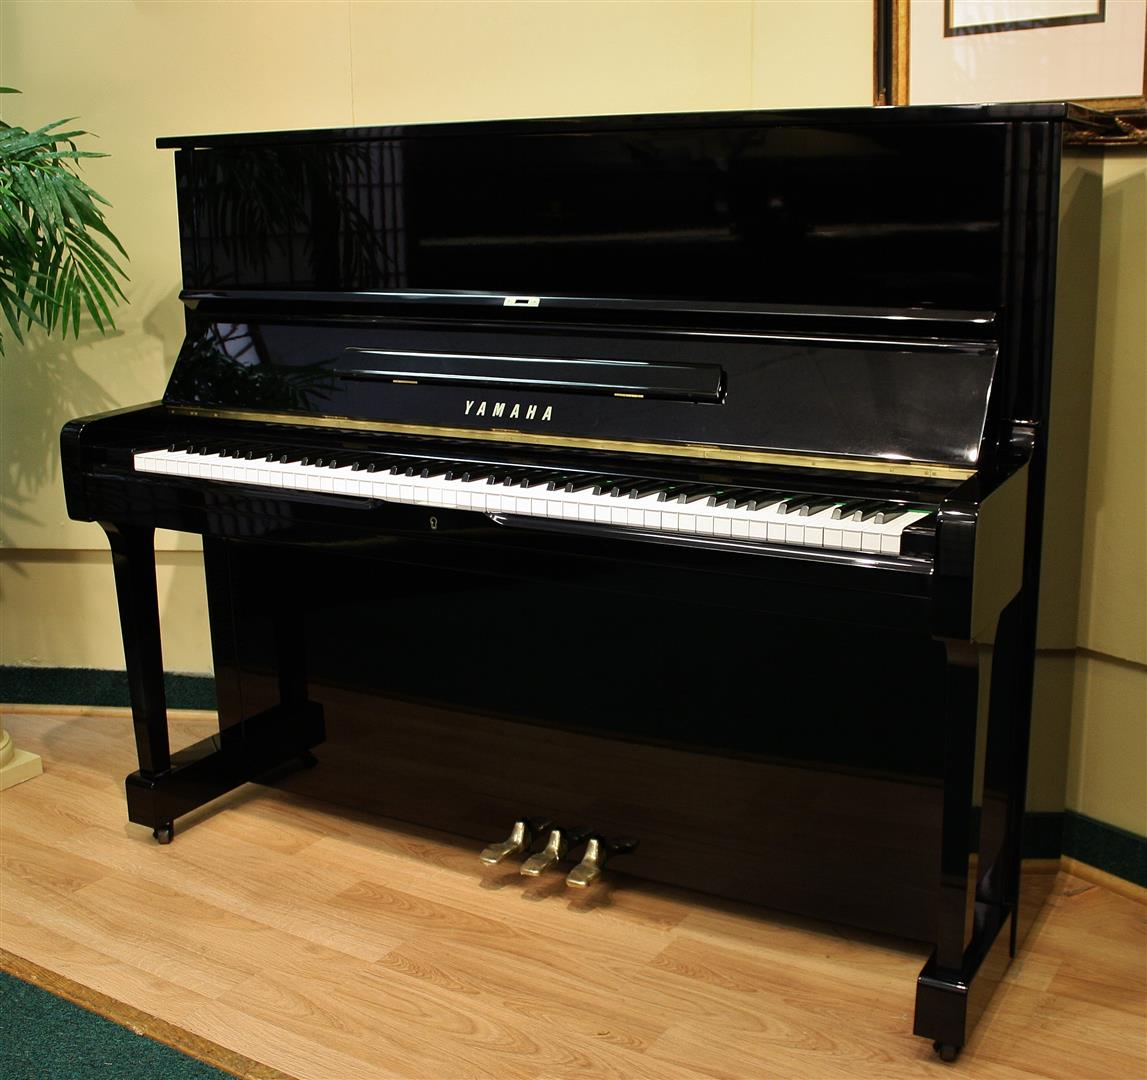 Yamaha piano piano gallery autos post for Used yamaha u1 price